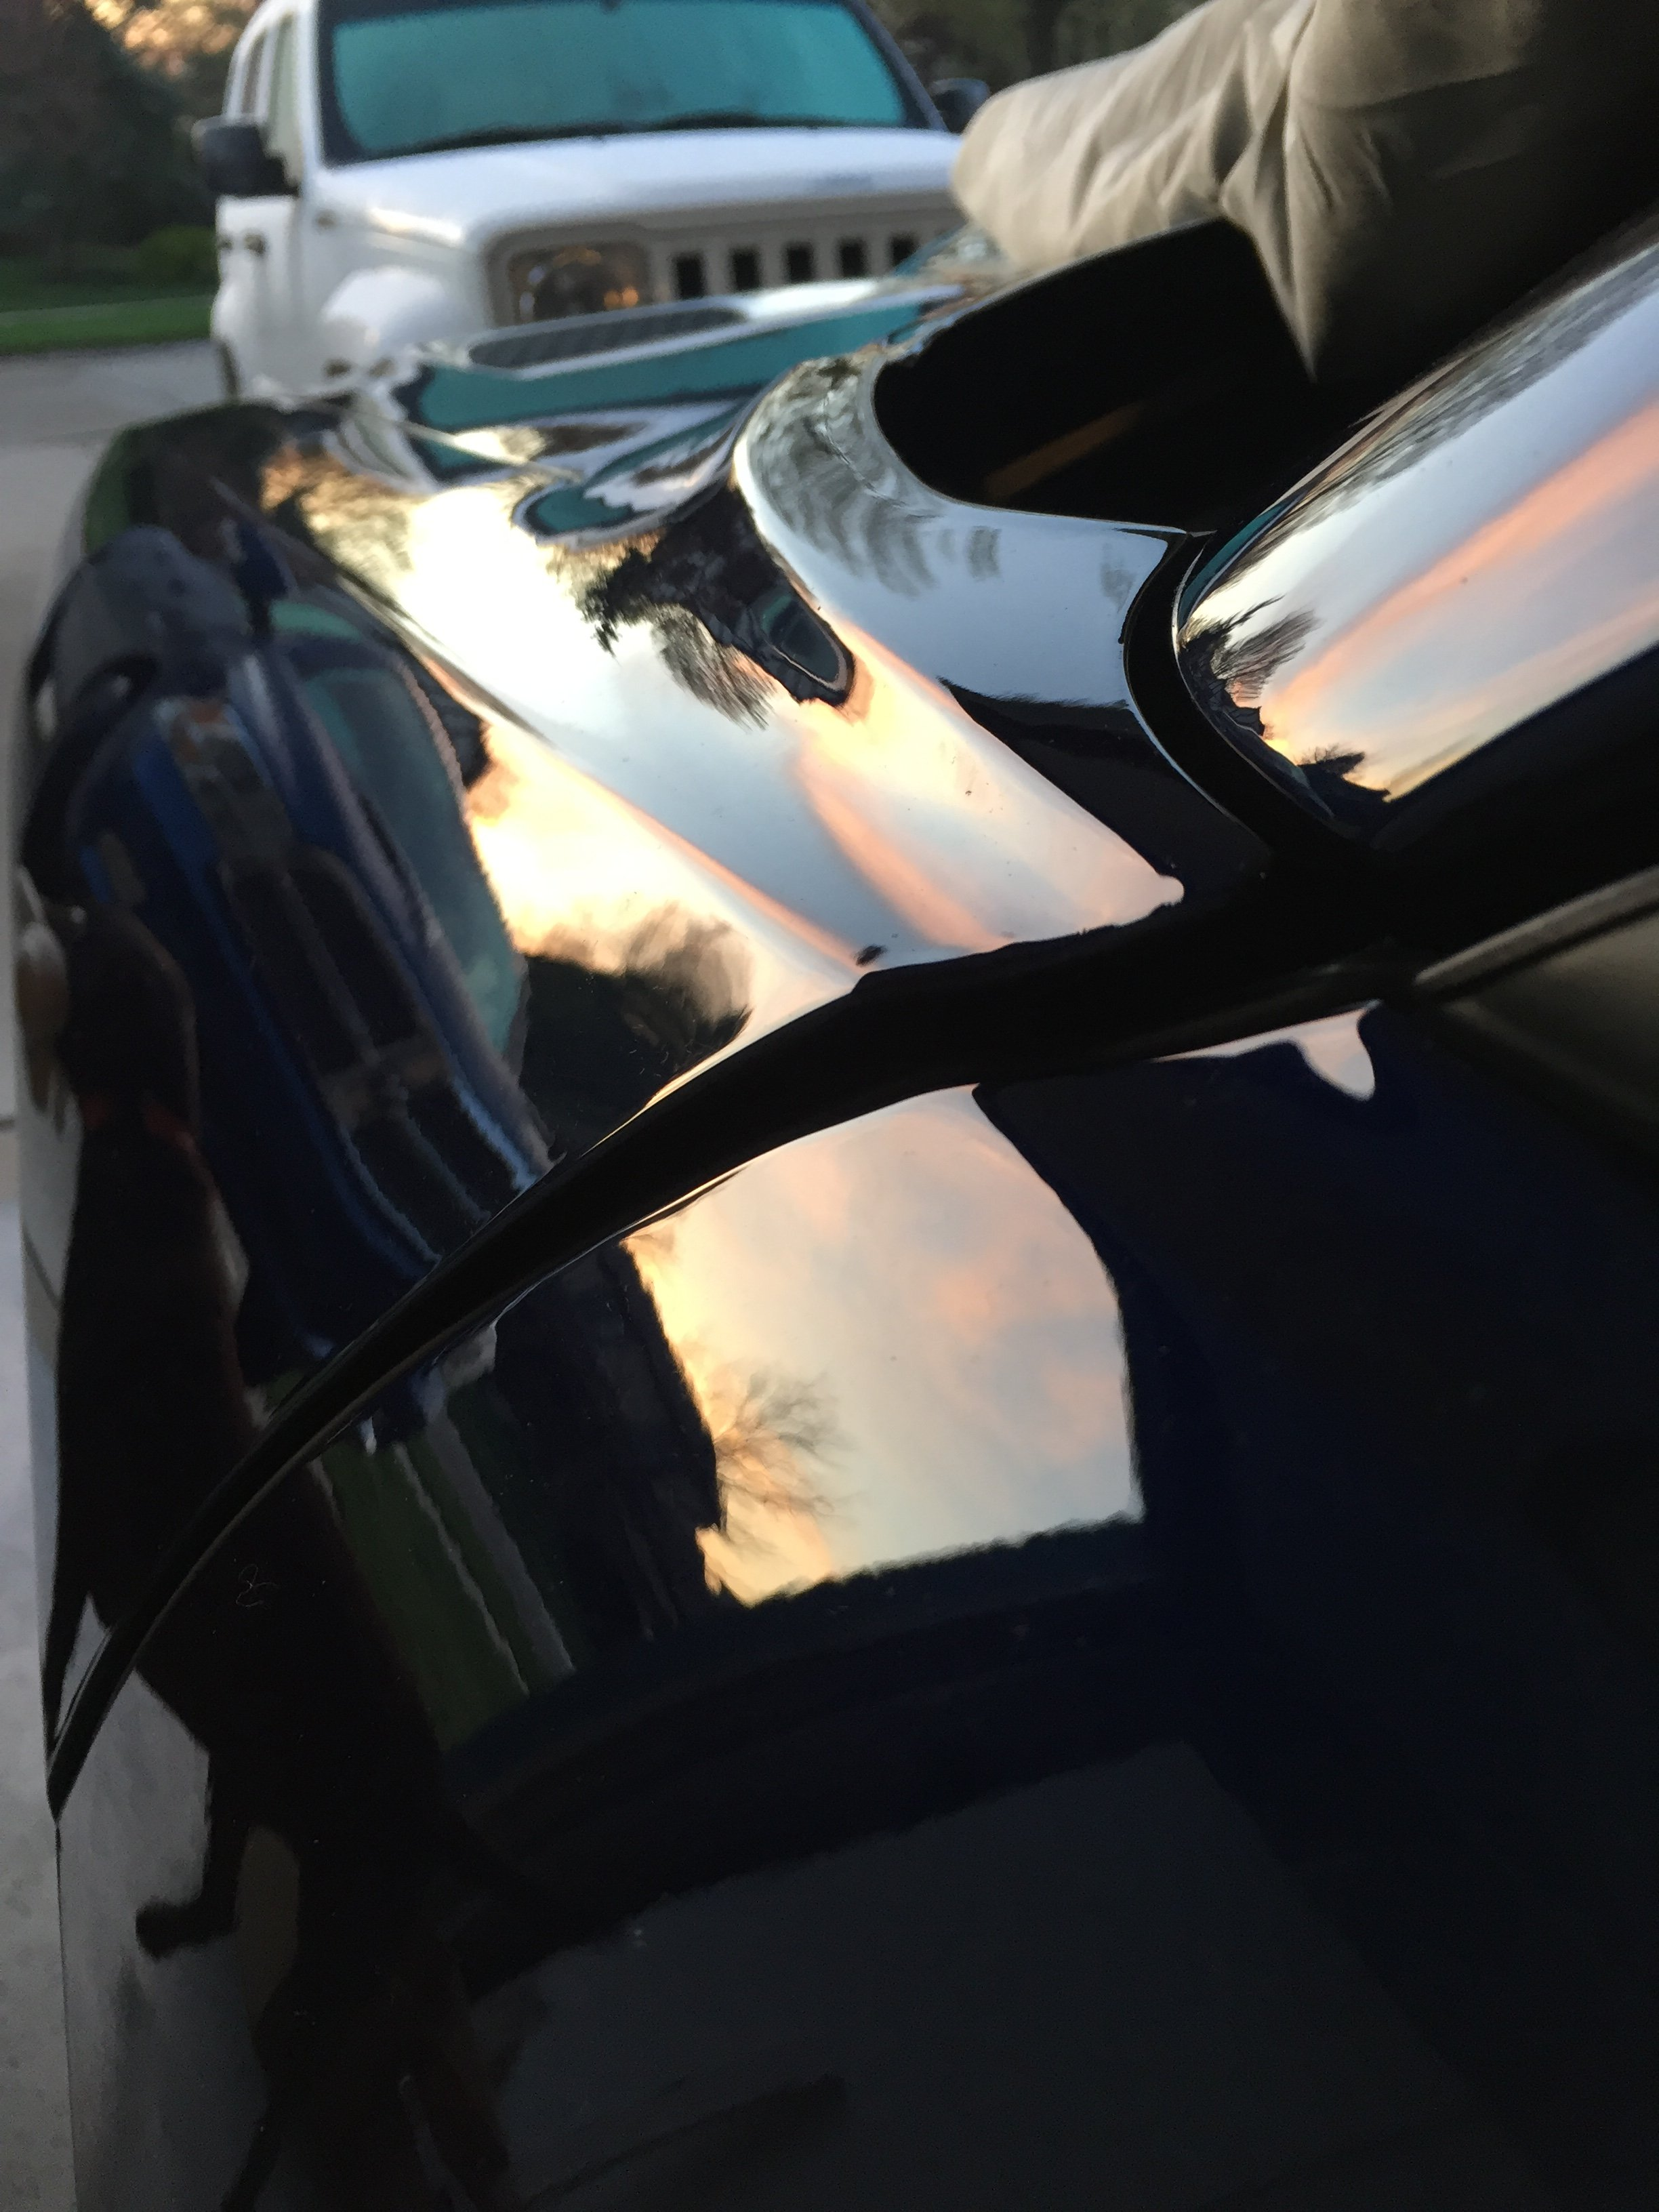 View attachment 41079 ... & BAD FACTORY HOOD DOOR FENDER ALIGNMENT ON DRIVERS SIDE | SRT ...